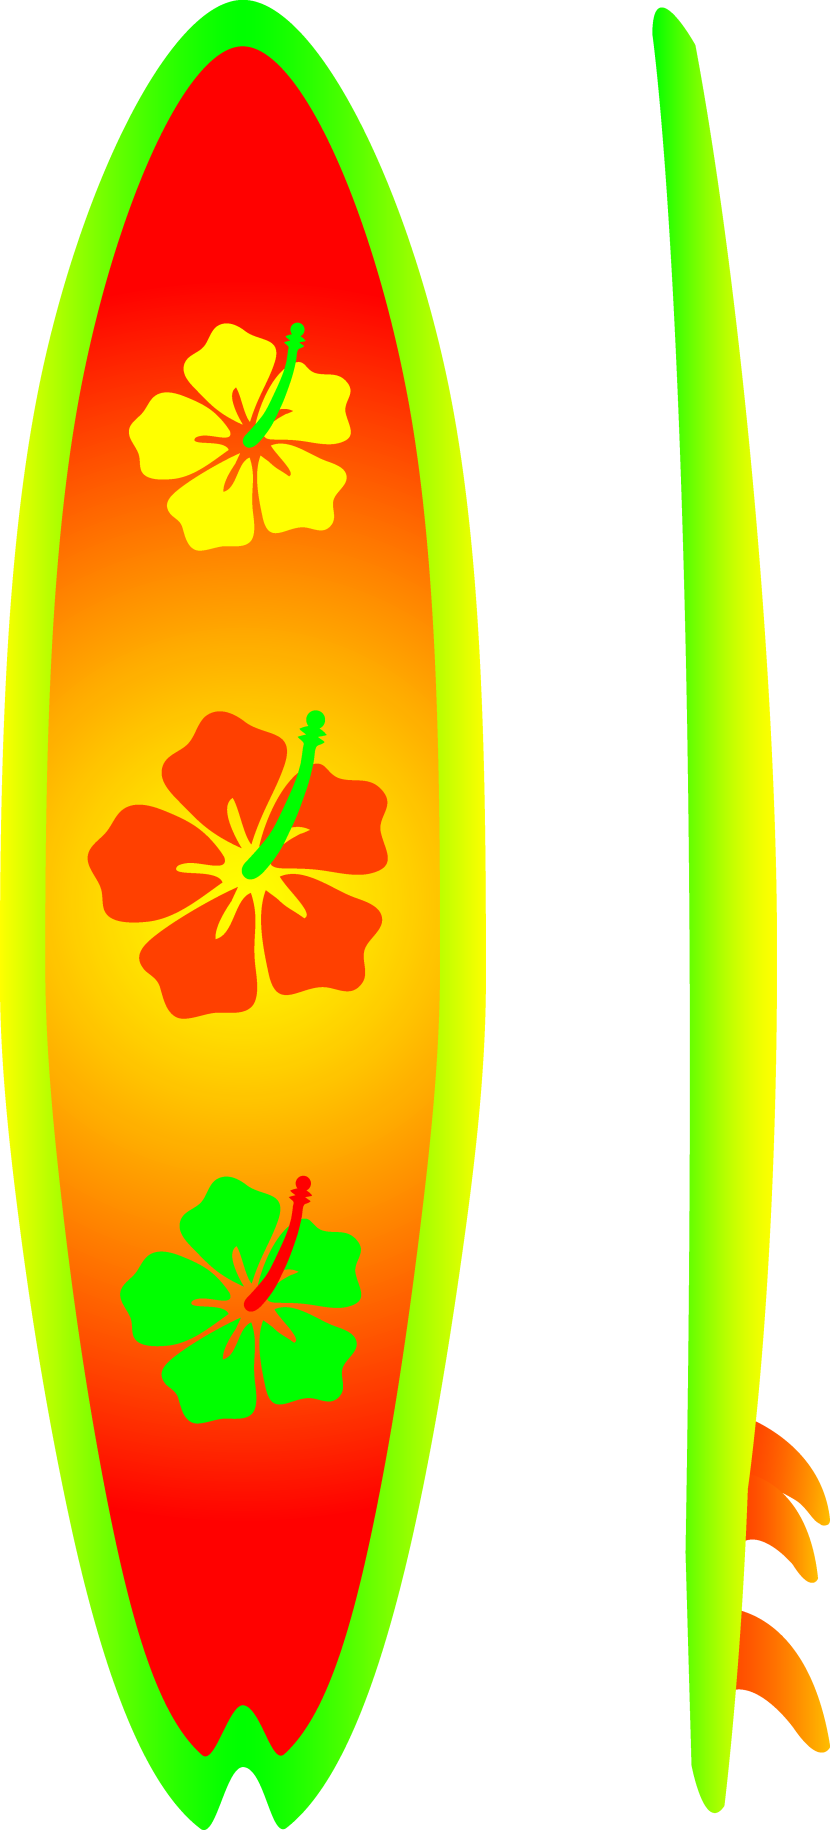 Clipart arrow surfboard png library download Clipart arrow surfboard - ClipartFest png library download